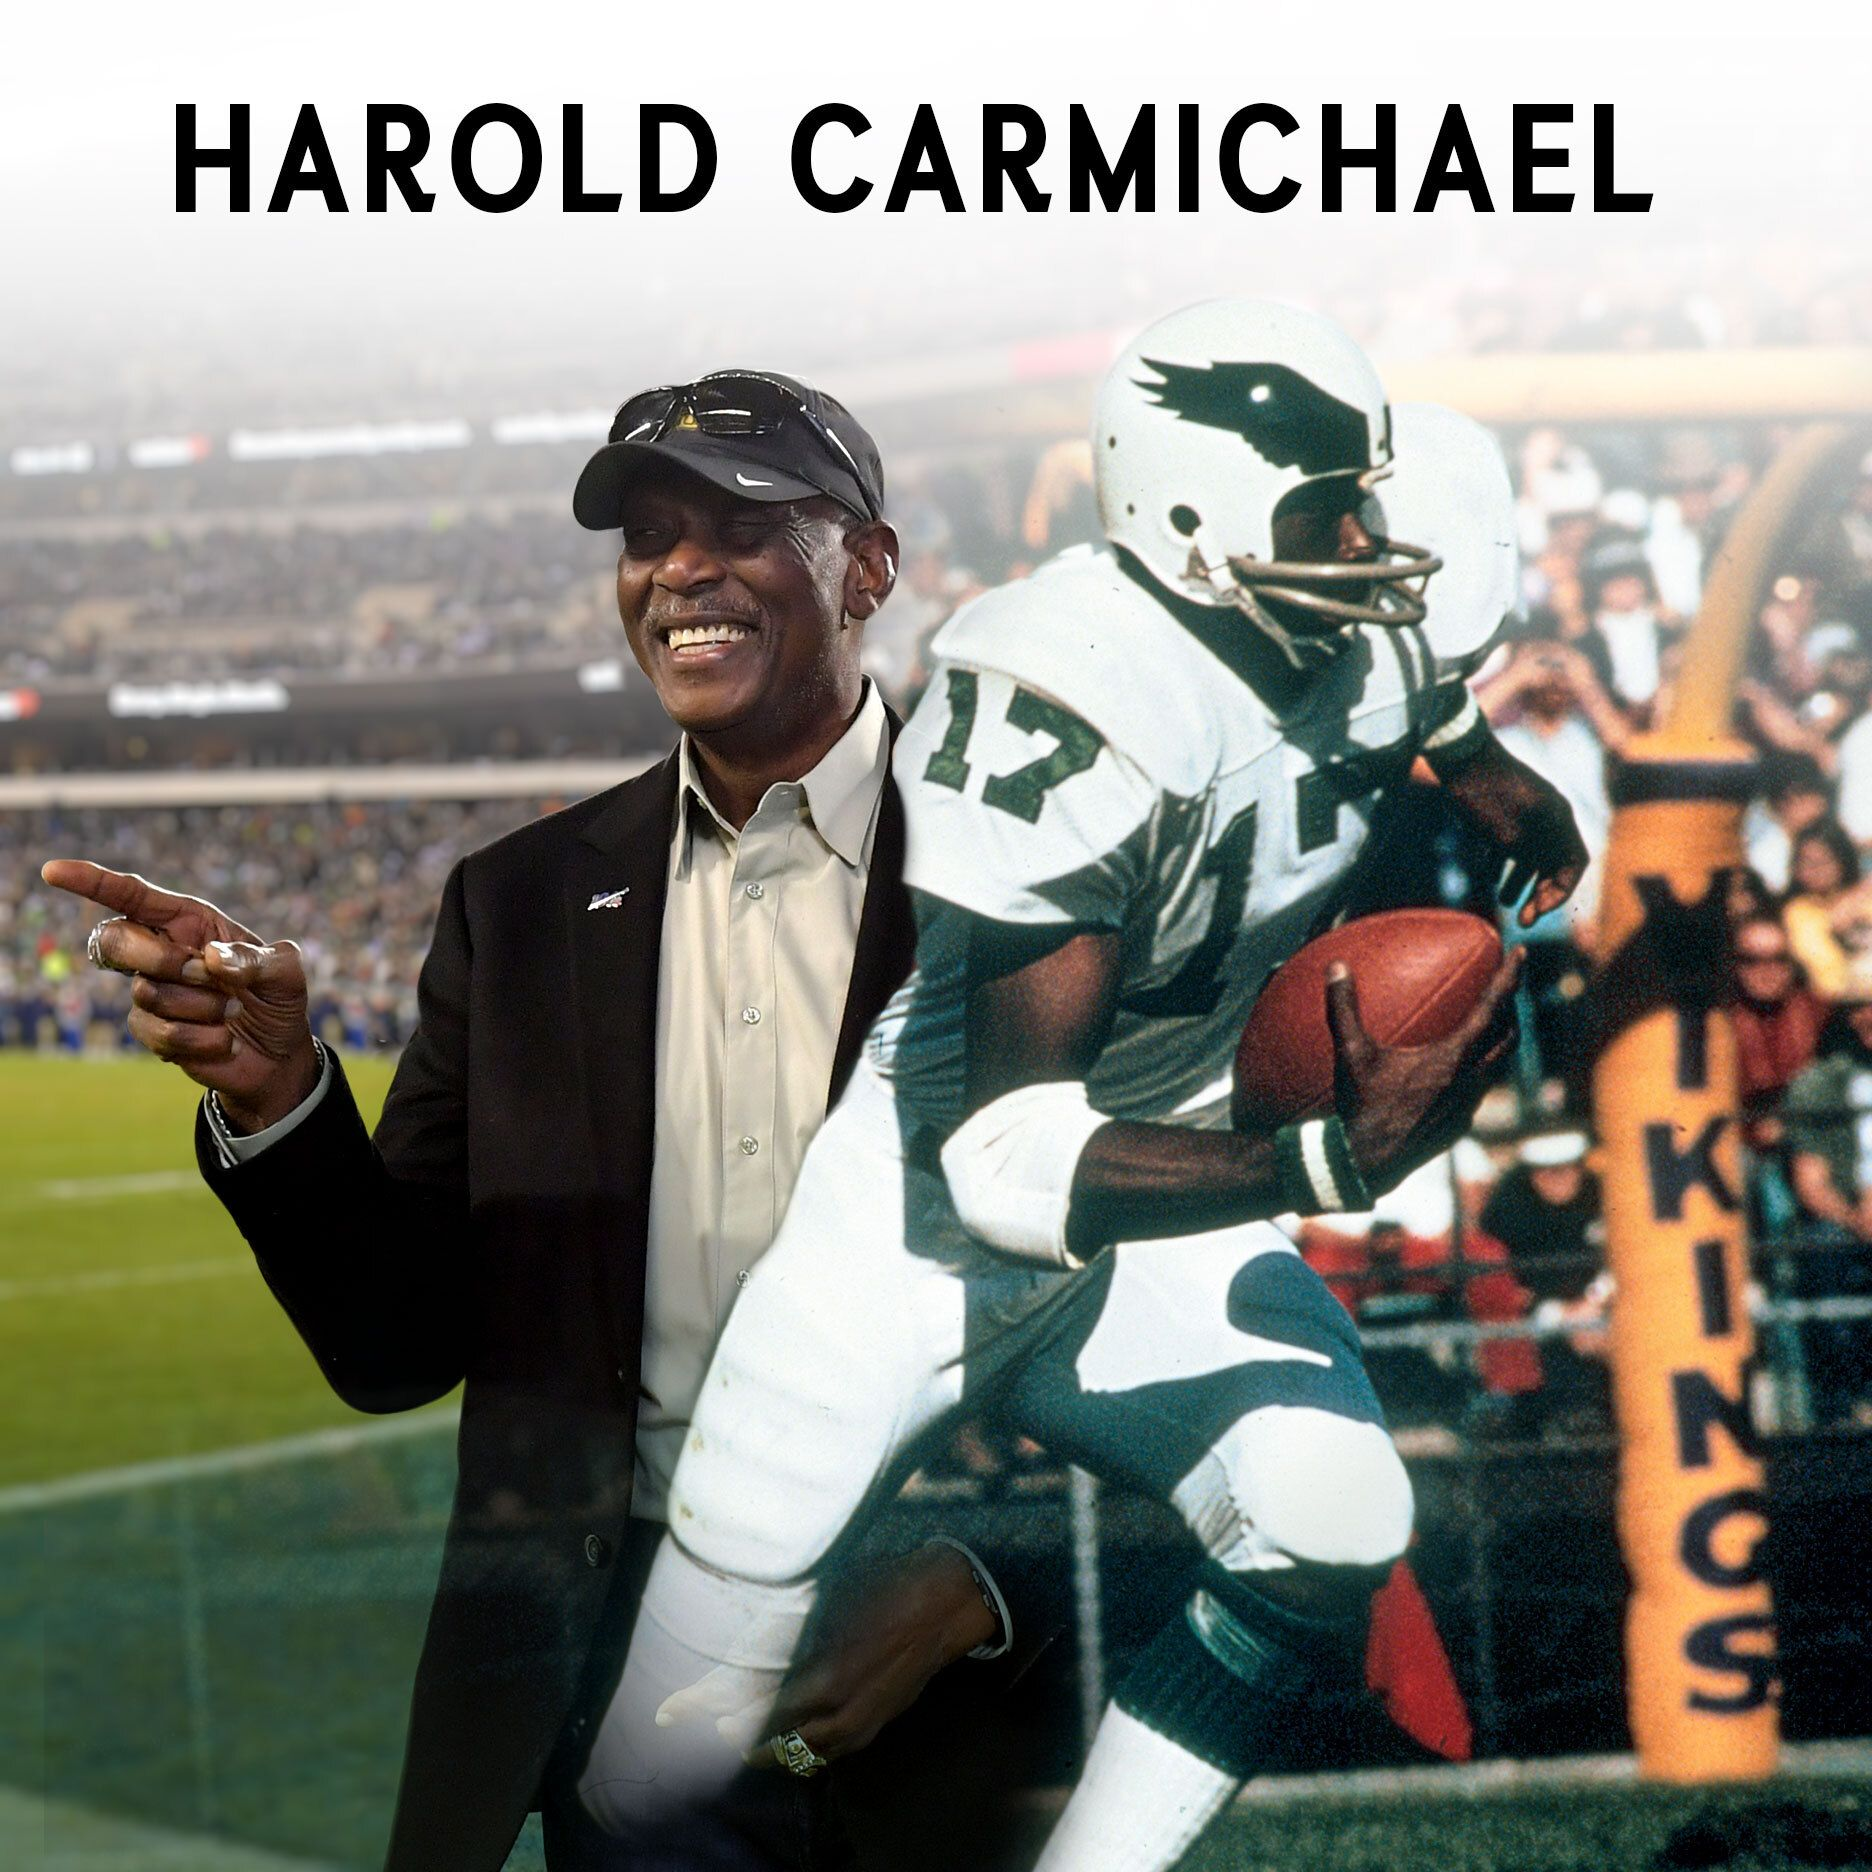 Harold Carmichael's incredible journey to the Pro Football Hall of Fame